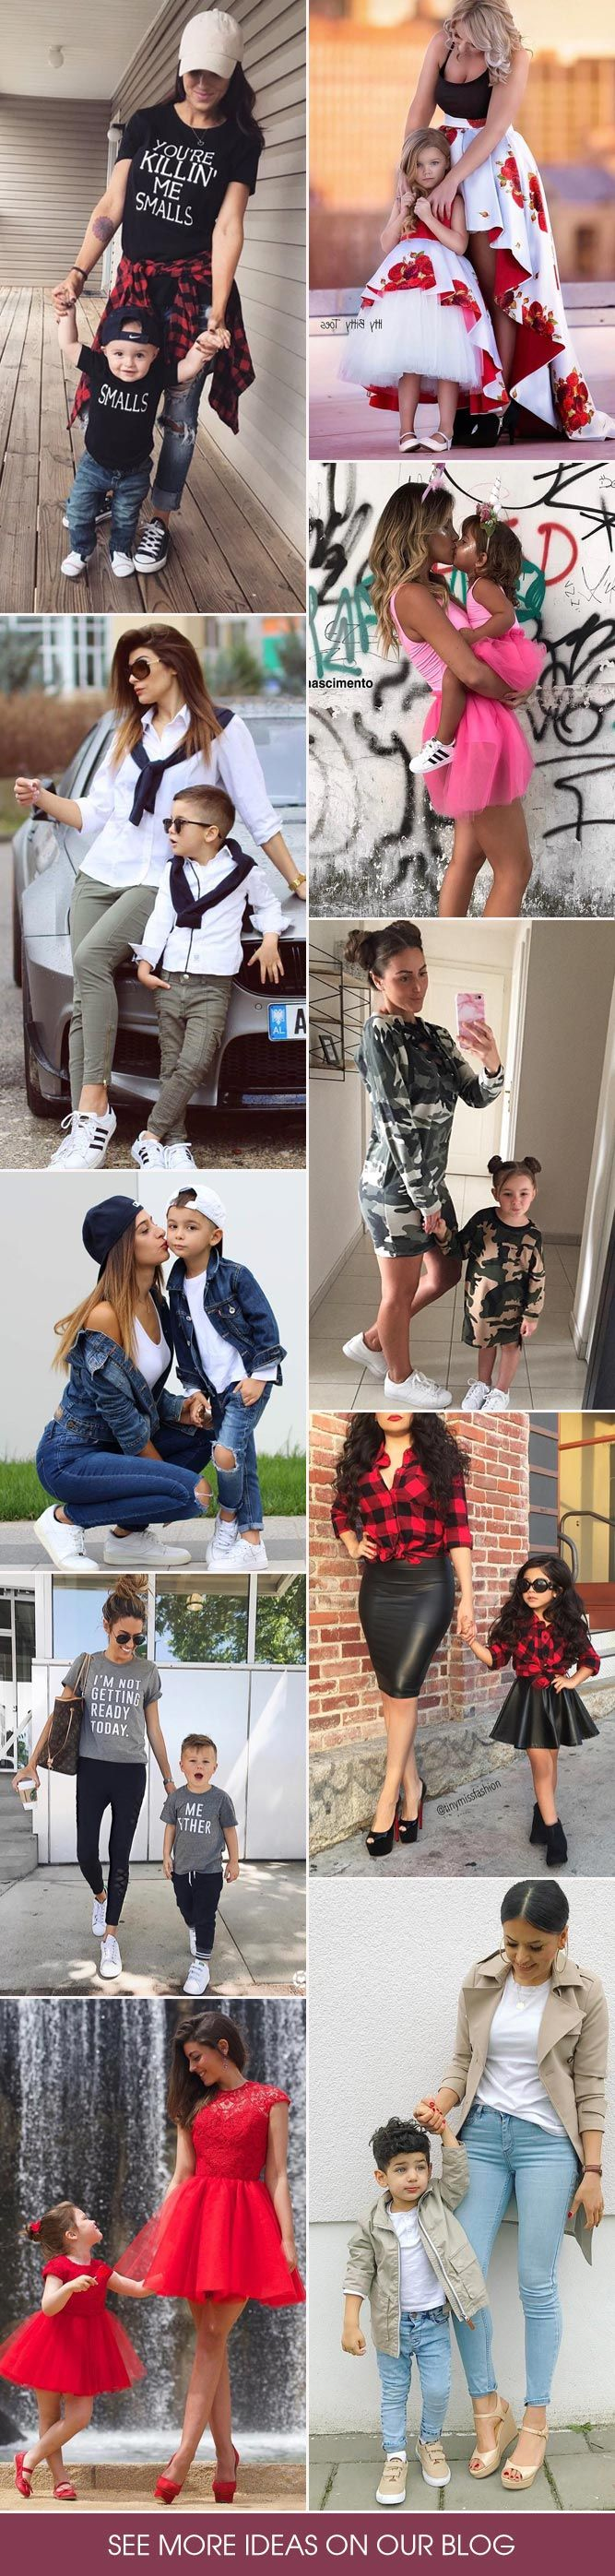 Mommy and me outfits - just try it once and you will not be able to stop, at least until your little copy grows old enough to make his or her own decisions.